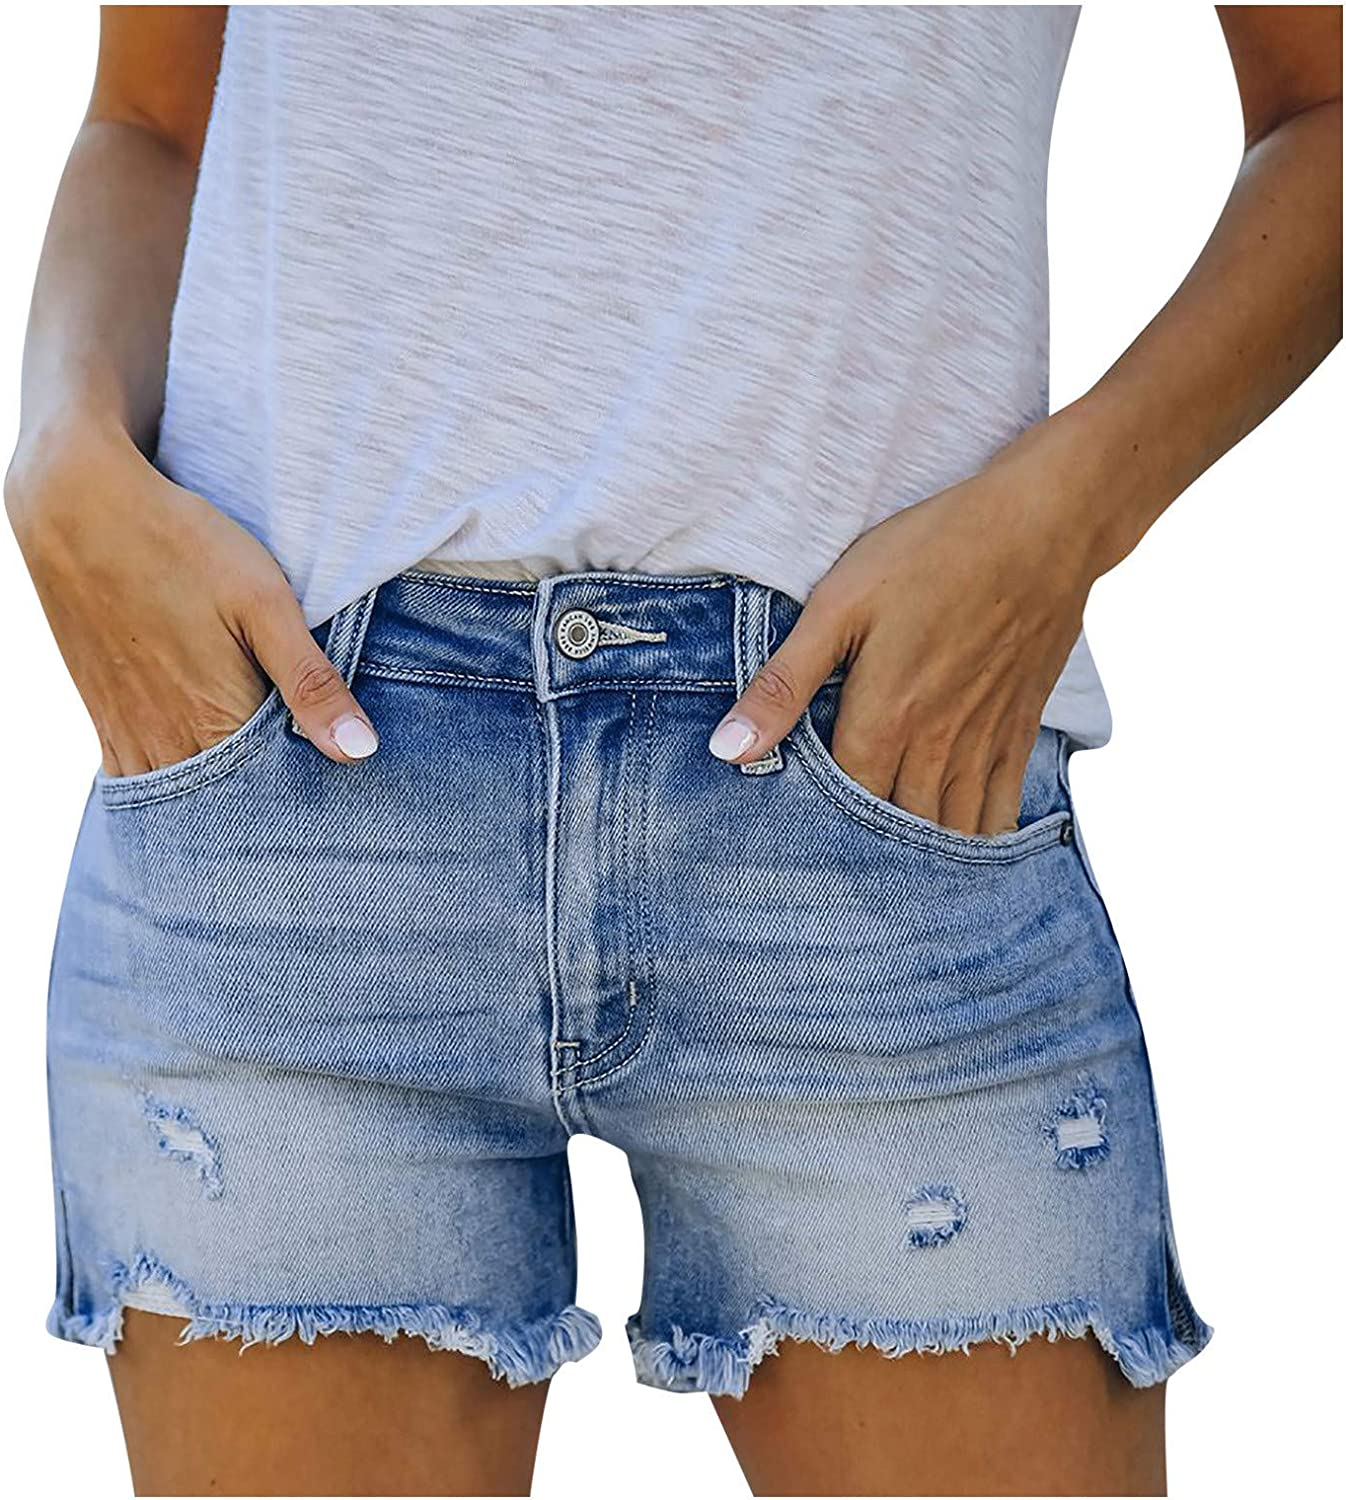 Fankle Womens Denim Shorts High Waisted Frayed Raw Hemline Ripped Distressed Hot Jeans